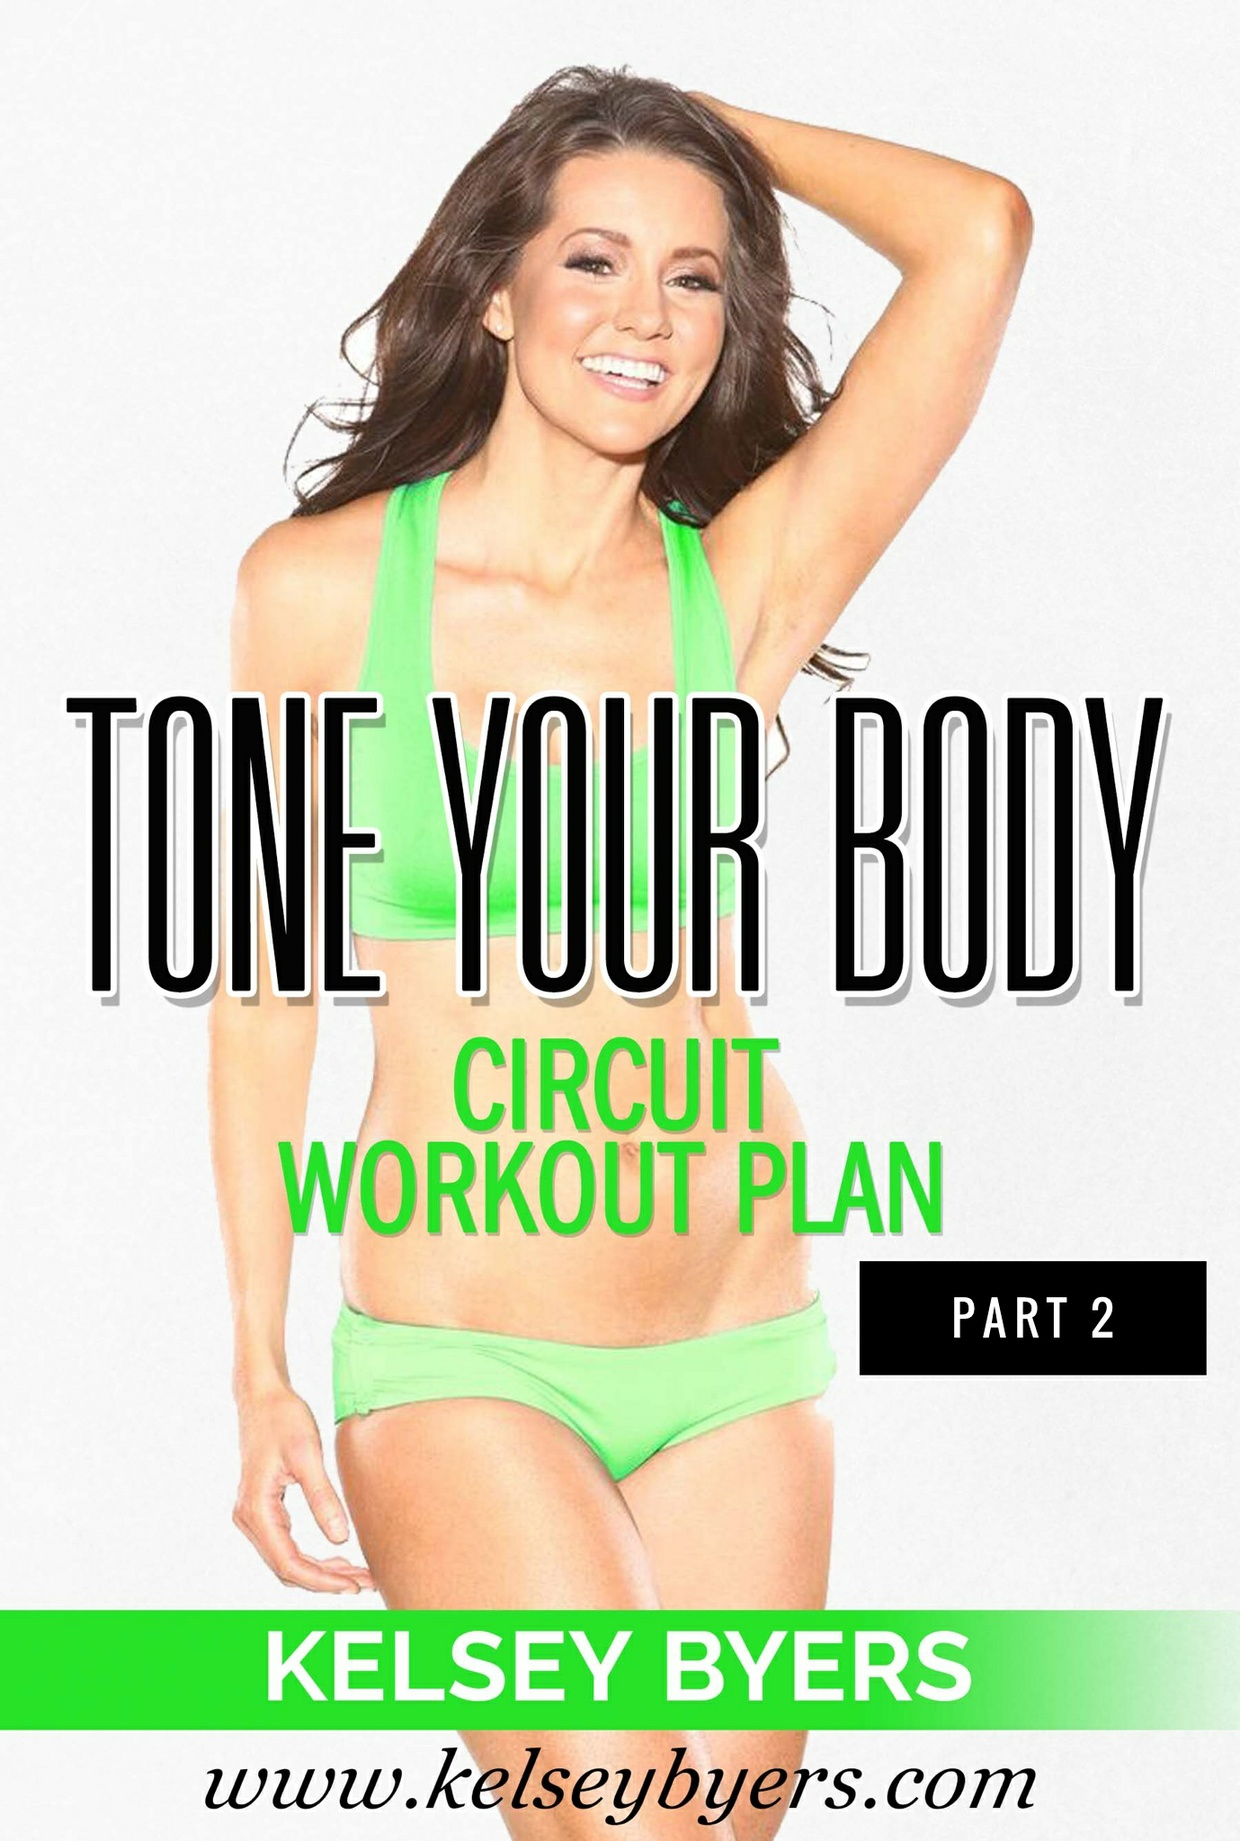 Part 2: Circuit Workout Plan